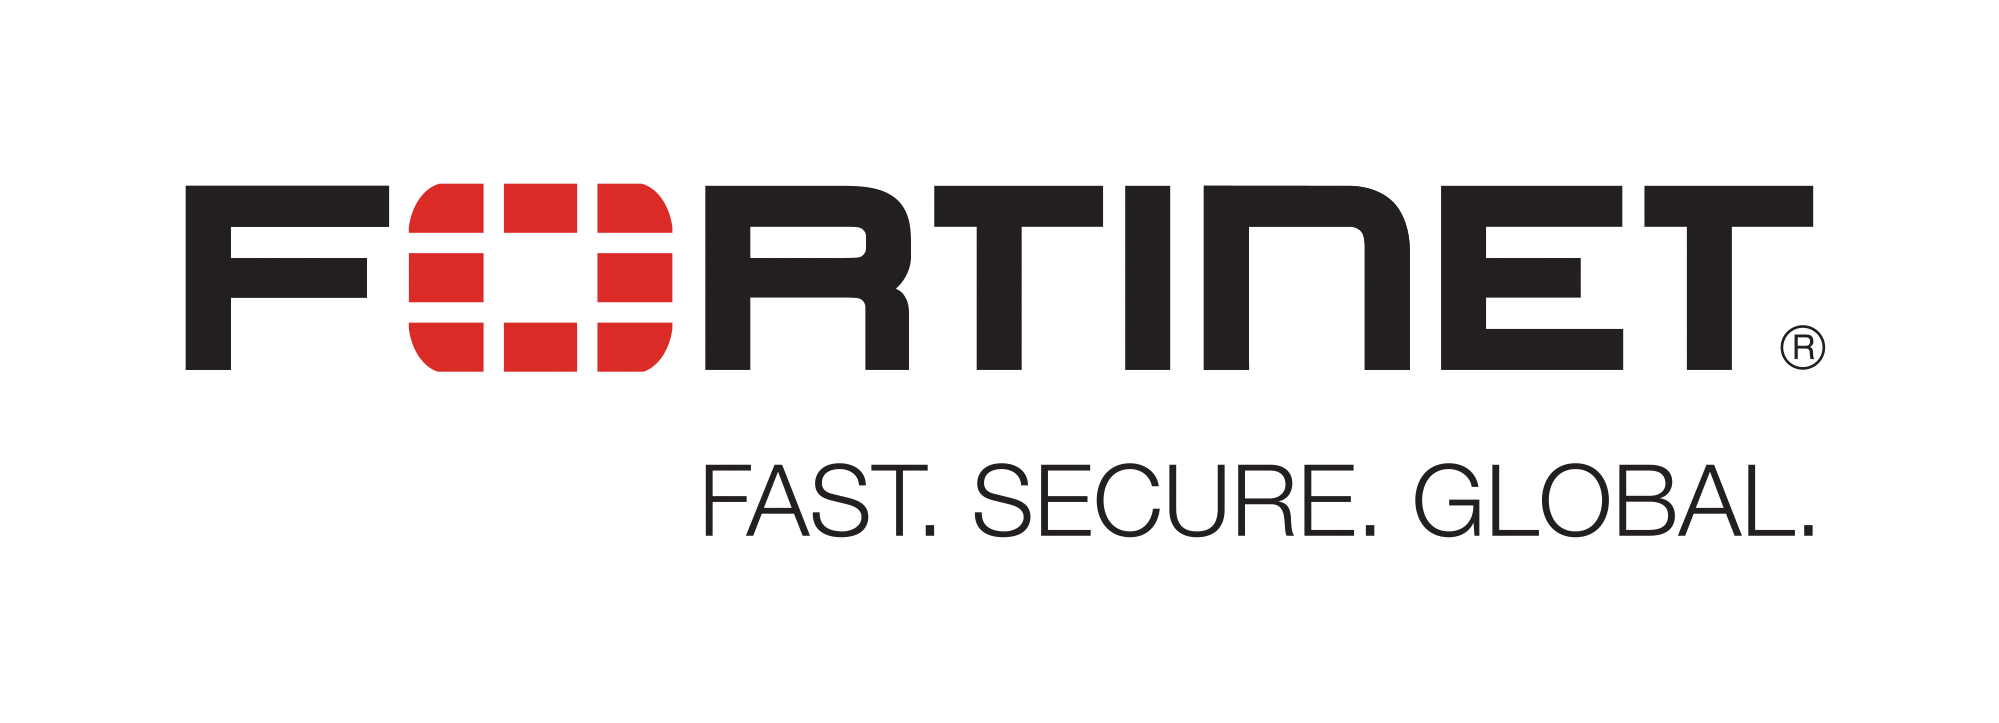 Fortinet_LogoTag_BlackRed_Lg.png